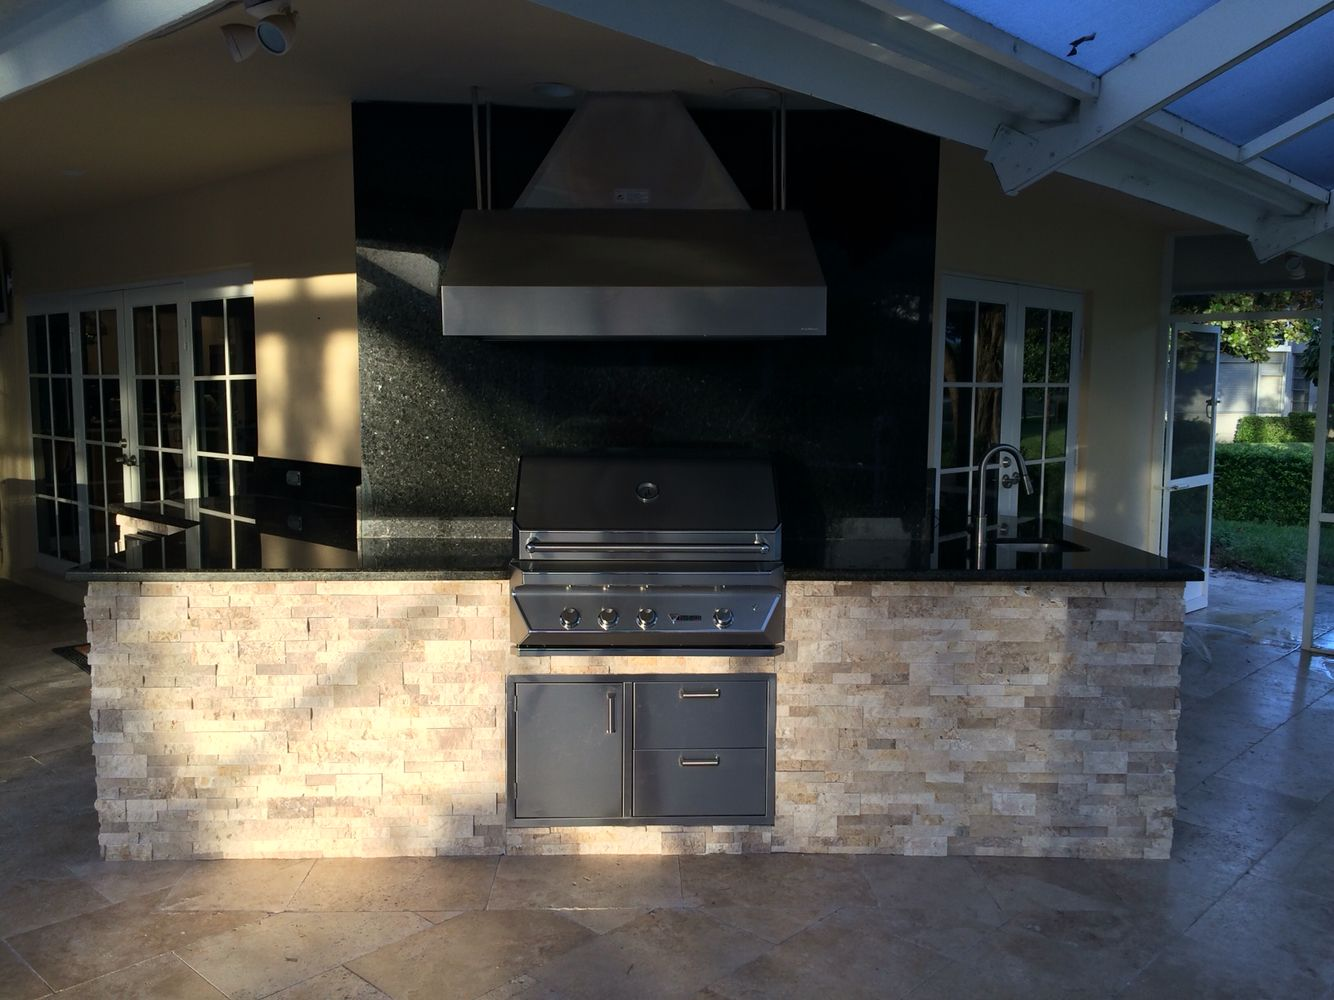 Custom Outdoor Kitchen With Vent A Hood And Twin Eagles Grill Finished Just In Time For Thanksgiving Outdoor Kitchen Grill Outdoor Kitchen Kitchen Grill